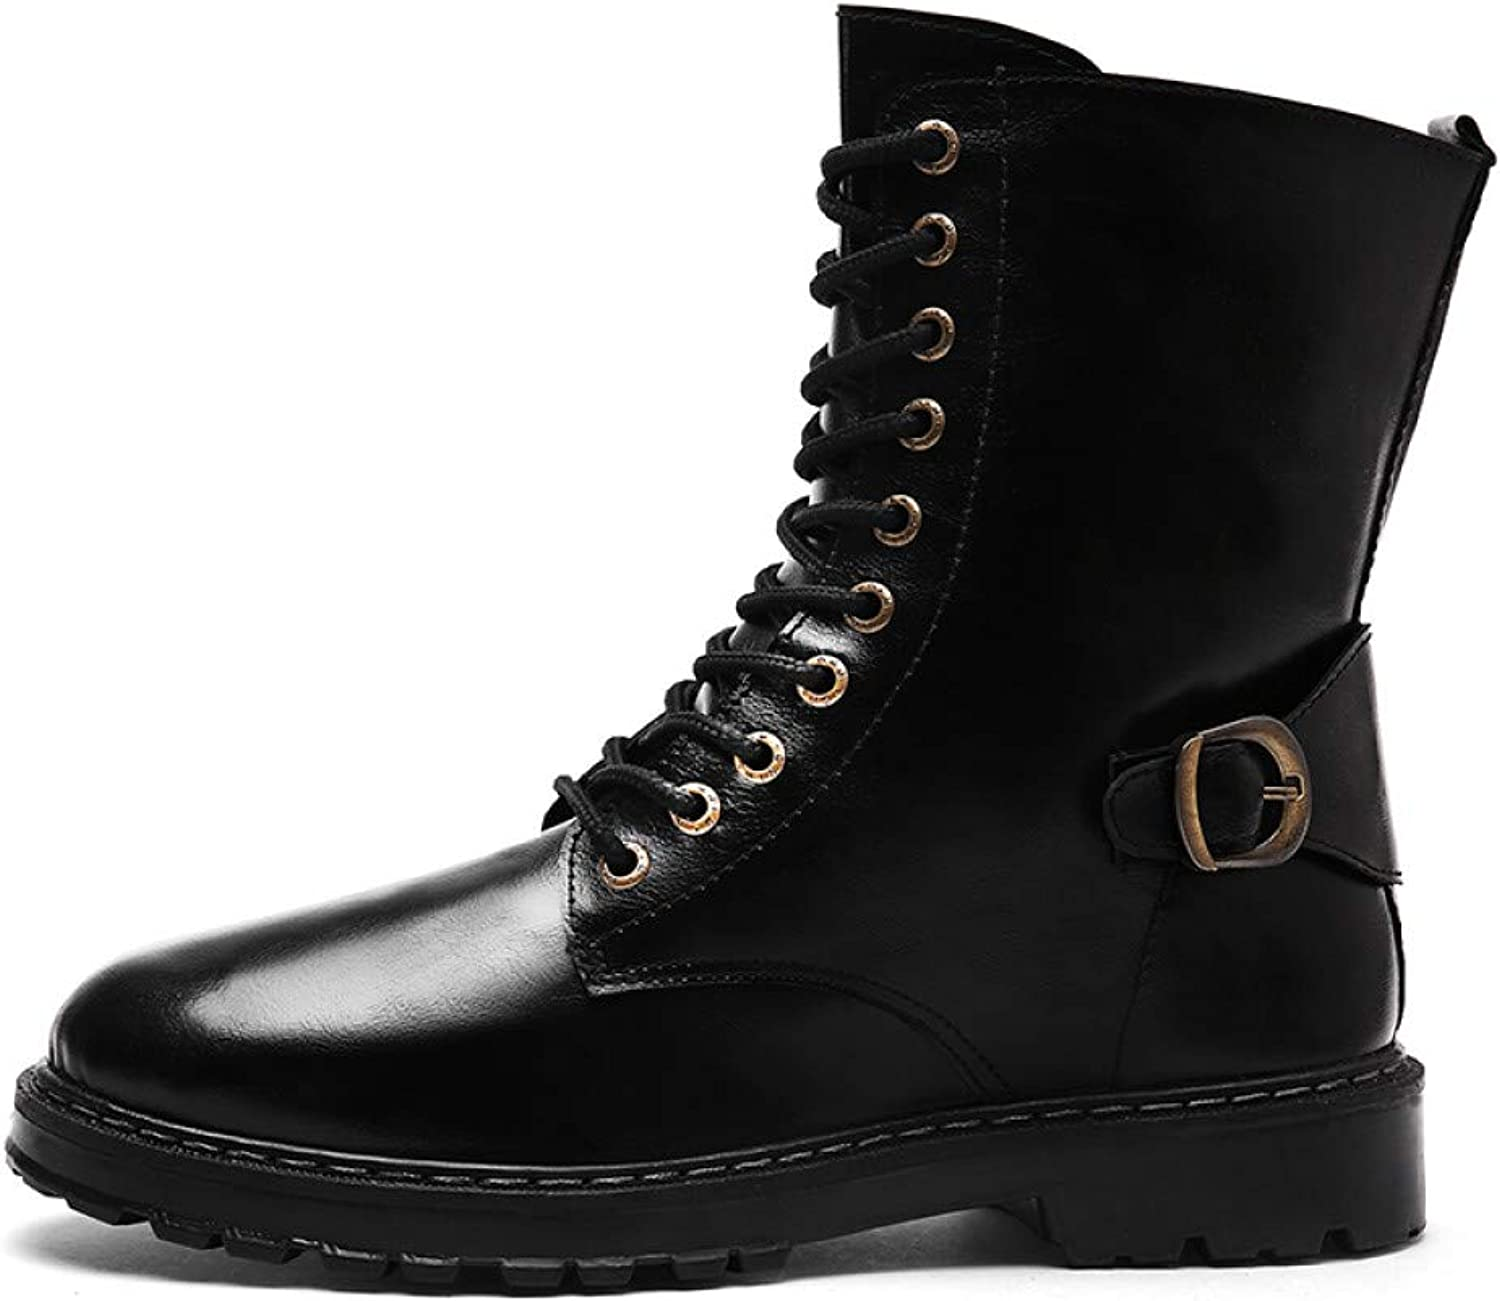 FHCGMX Casual Vintage Boots Male shoes For Men Adult Autumn Fashion Business Walking Martin Boots Footwear